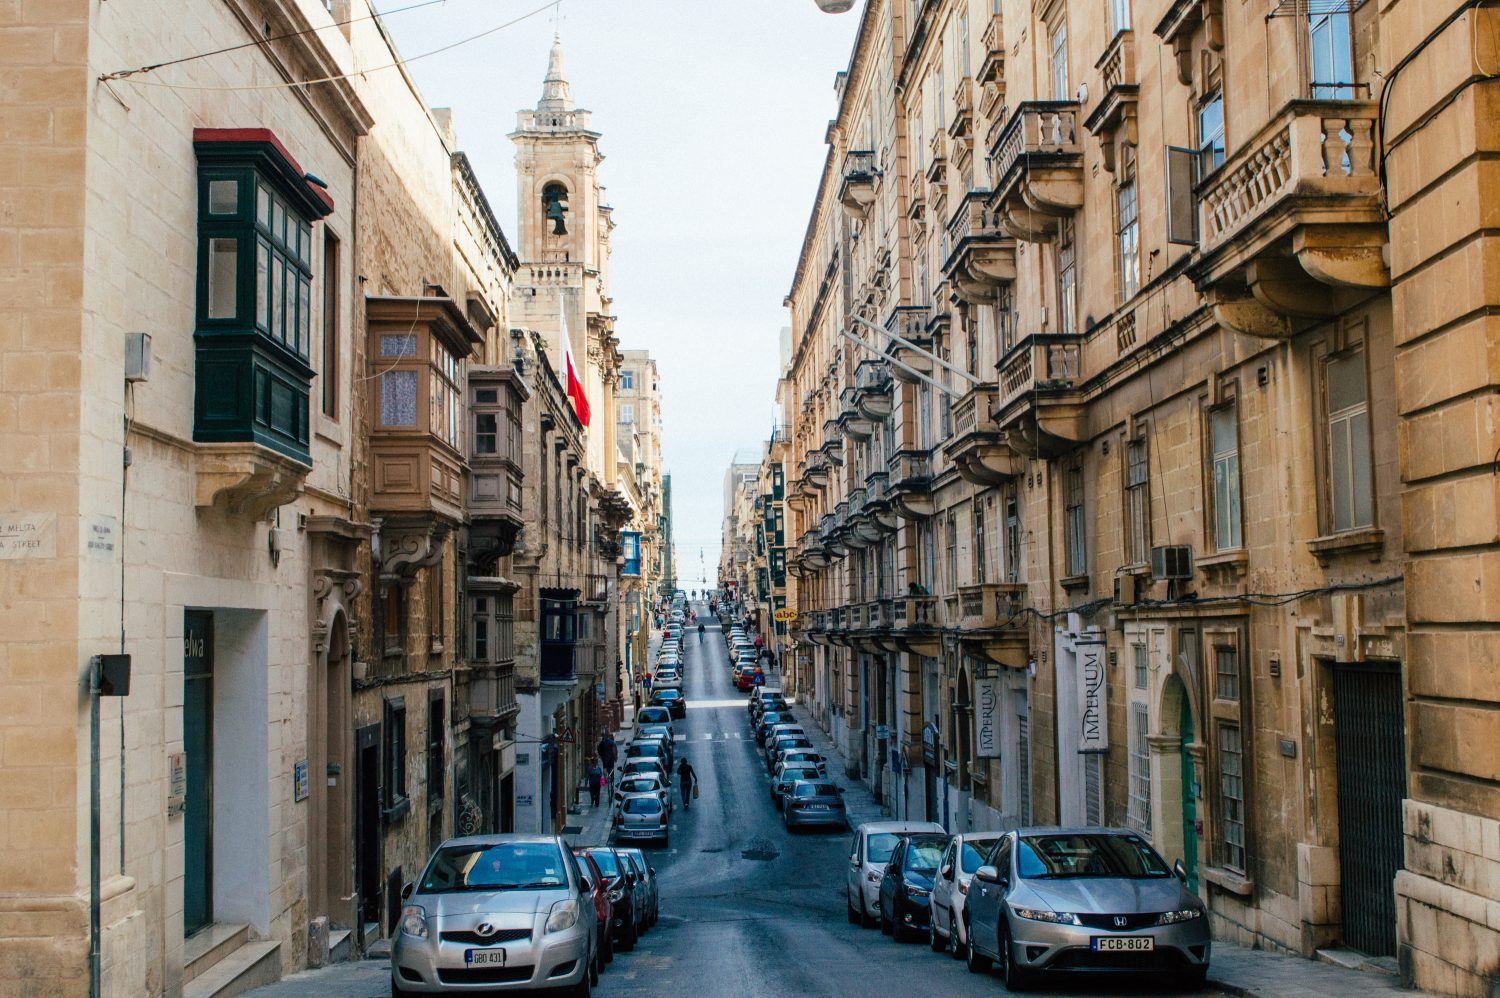 Visiting Malta and looking for the best things to see, do and experience in Malta? Check out this gorgeous photo diary packed with inspiration for how to spend 4 days in Malta. Take this as the ultimate itinerary inspiration for your next Malta visit!